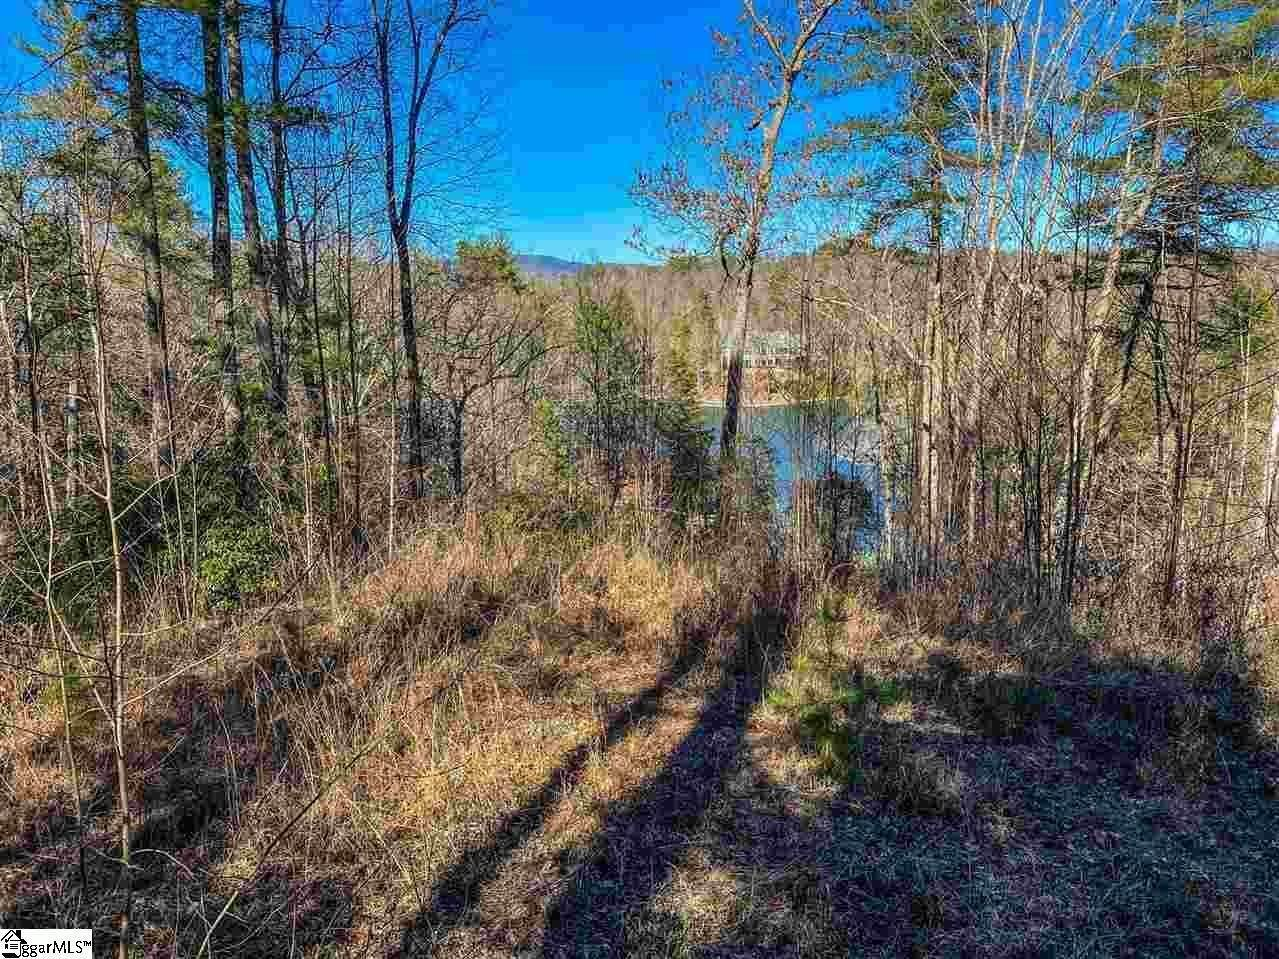 11. Residential Lot for Sale at The Cliffs At Keowee Falls North, Salem, SC 29676